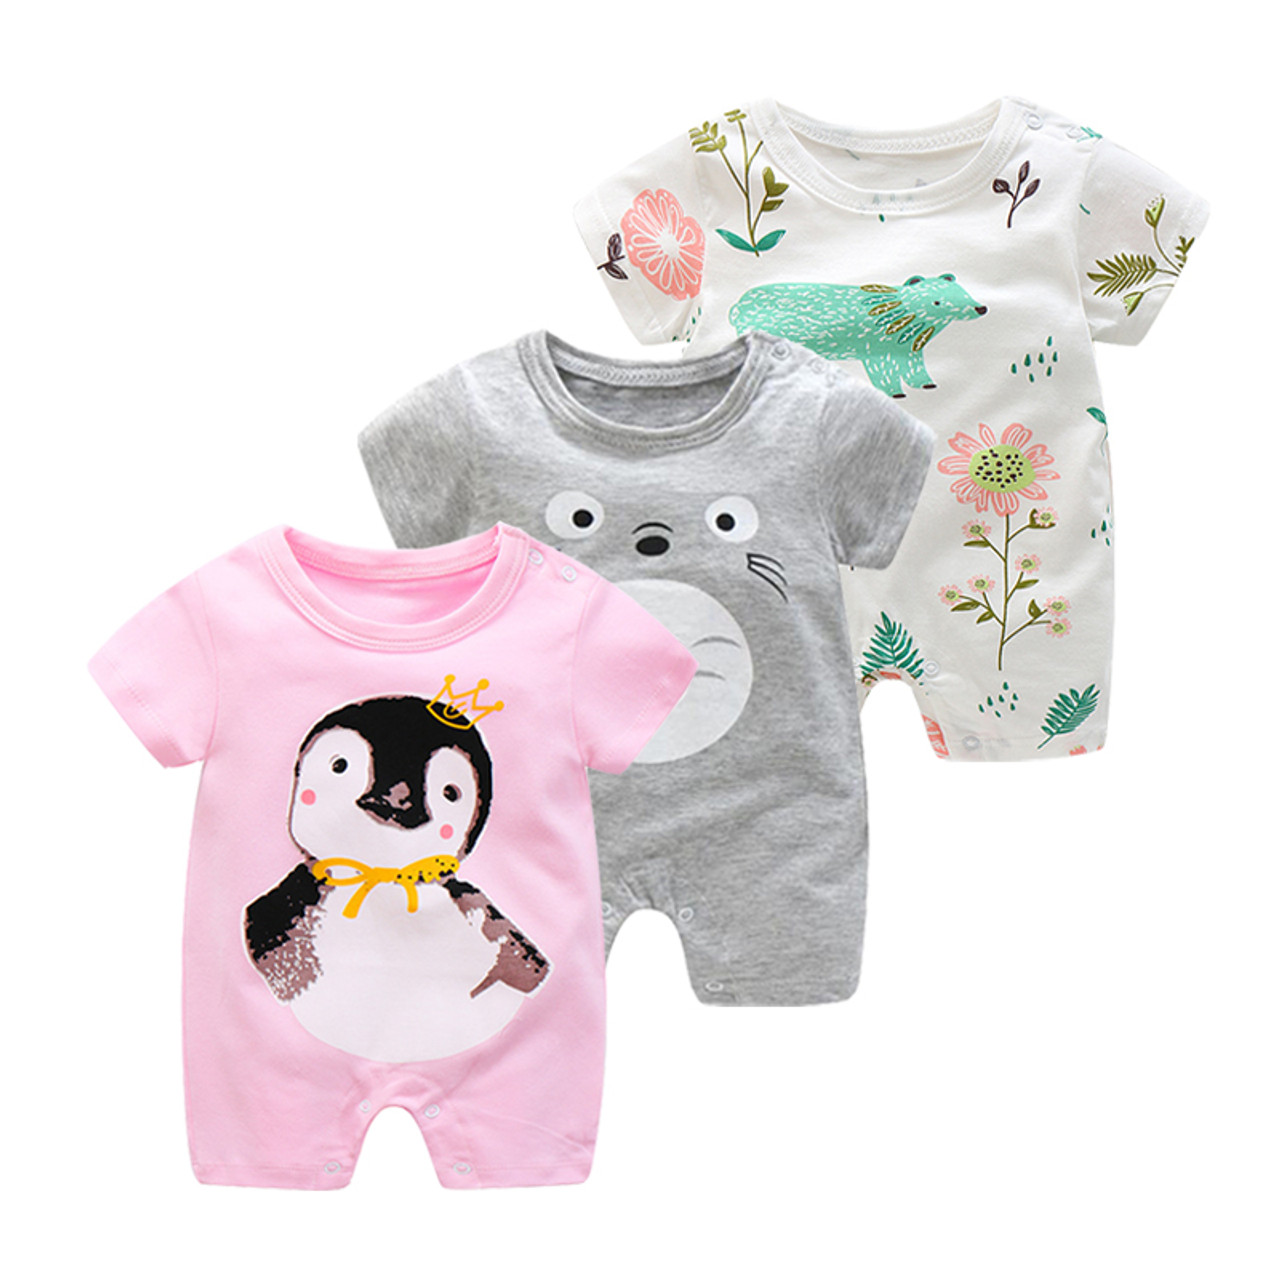 c6993e950dc3 Summer Newborn Baby Jumpsuit Infant Crawling Short Sleeve Cotton Rompers  Baby Pajamas Cartoon Animal Clothes For ...